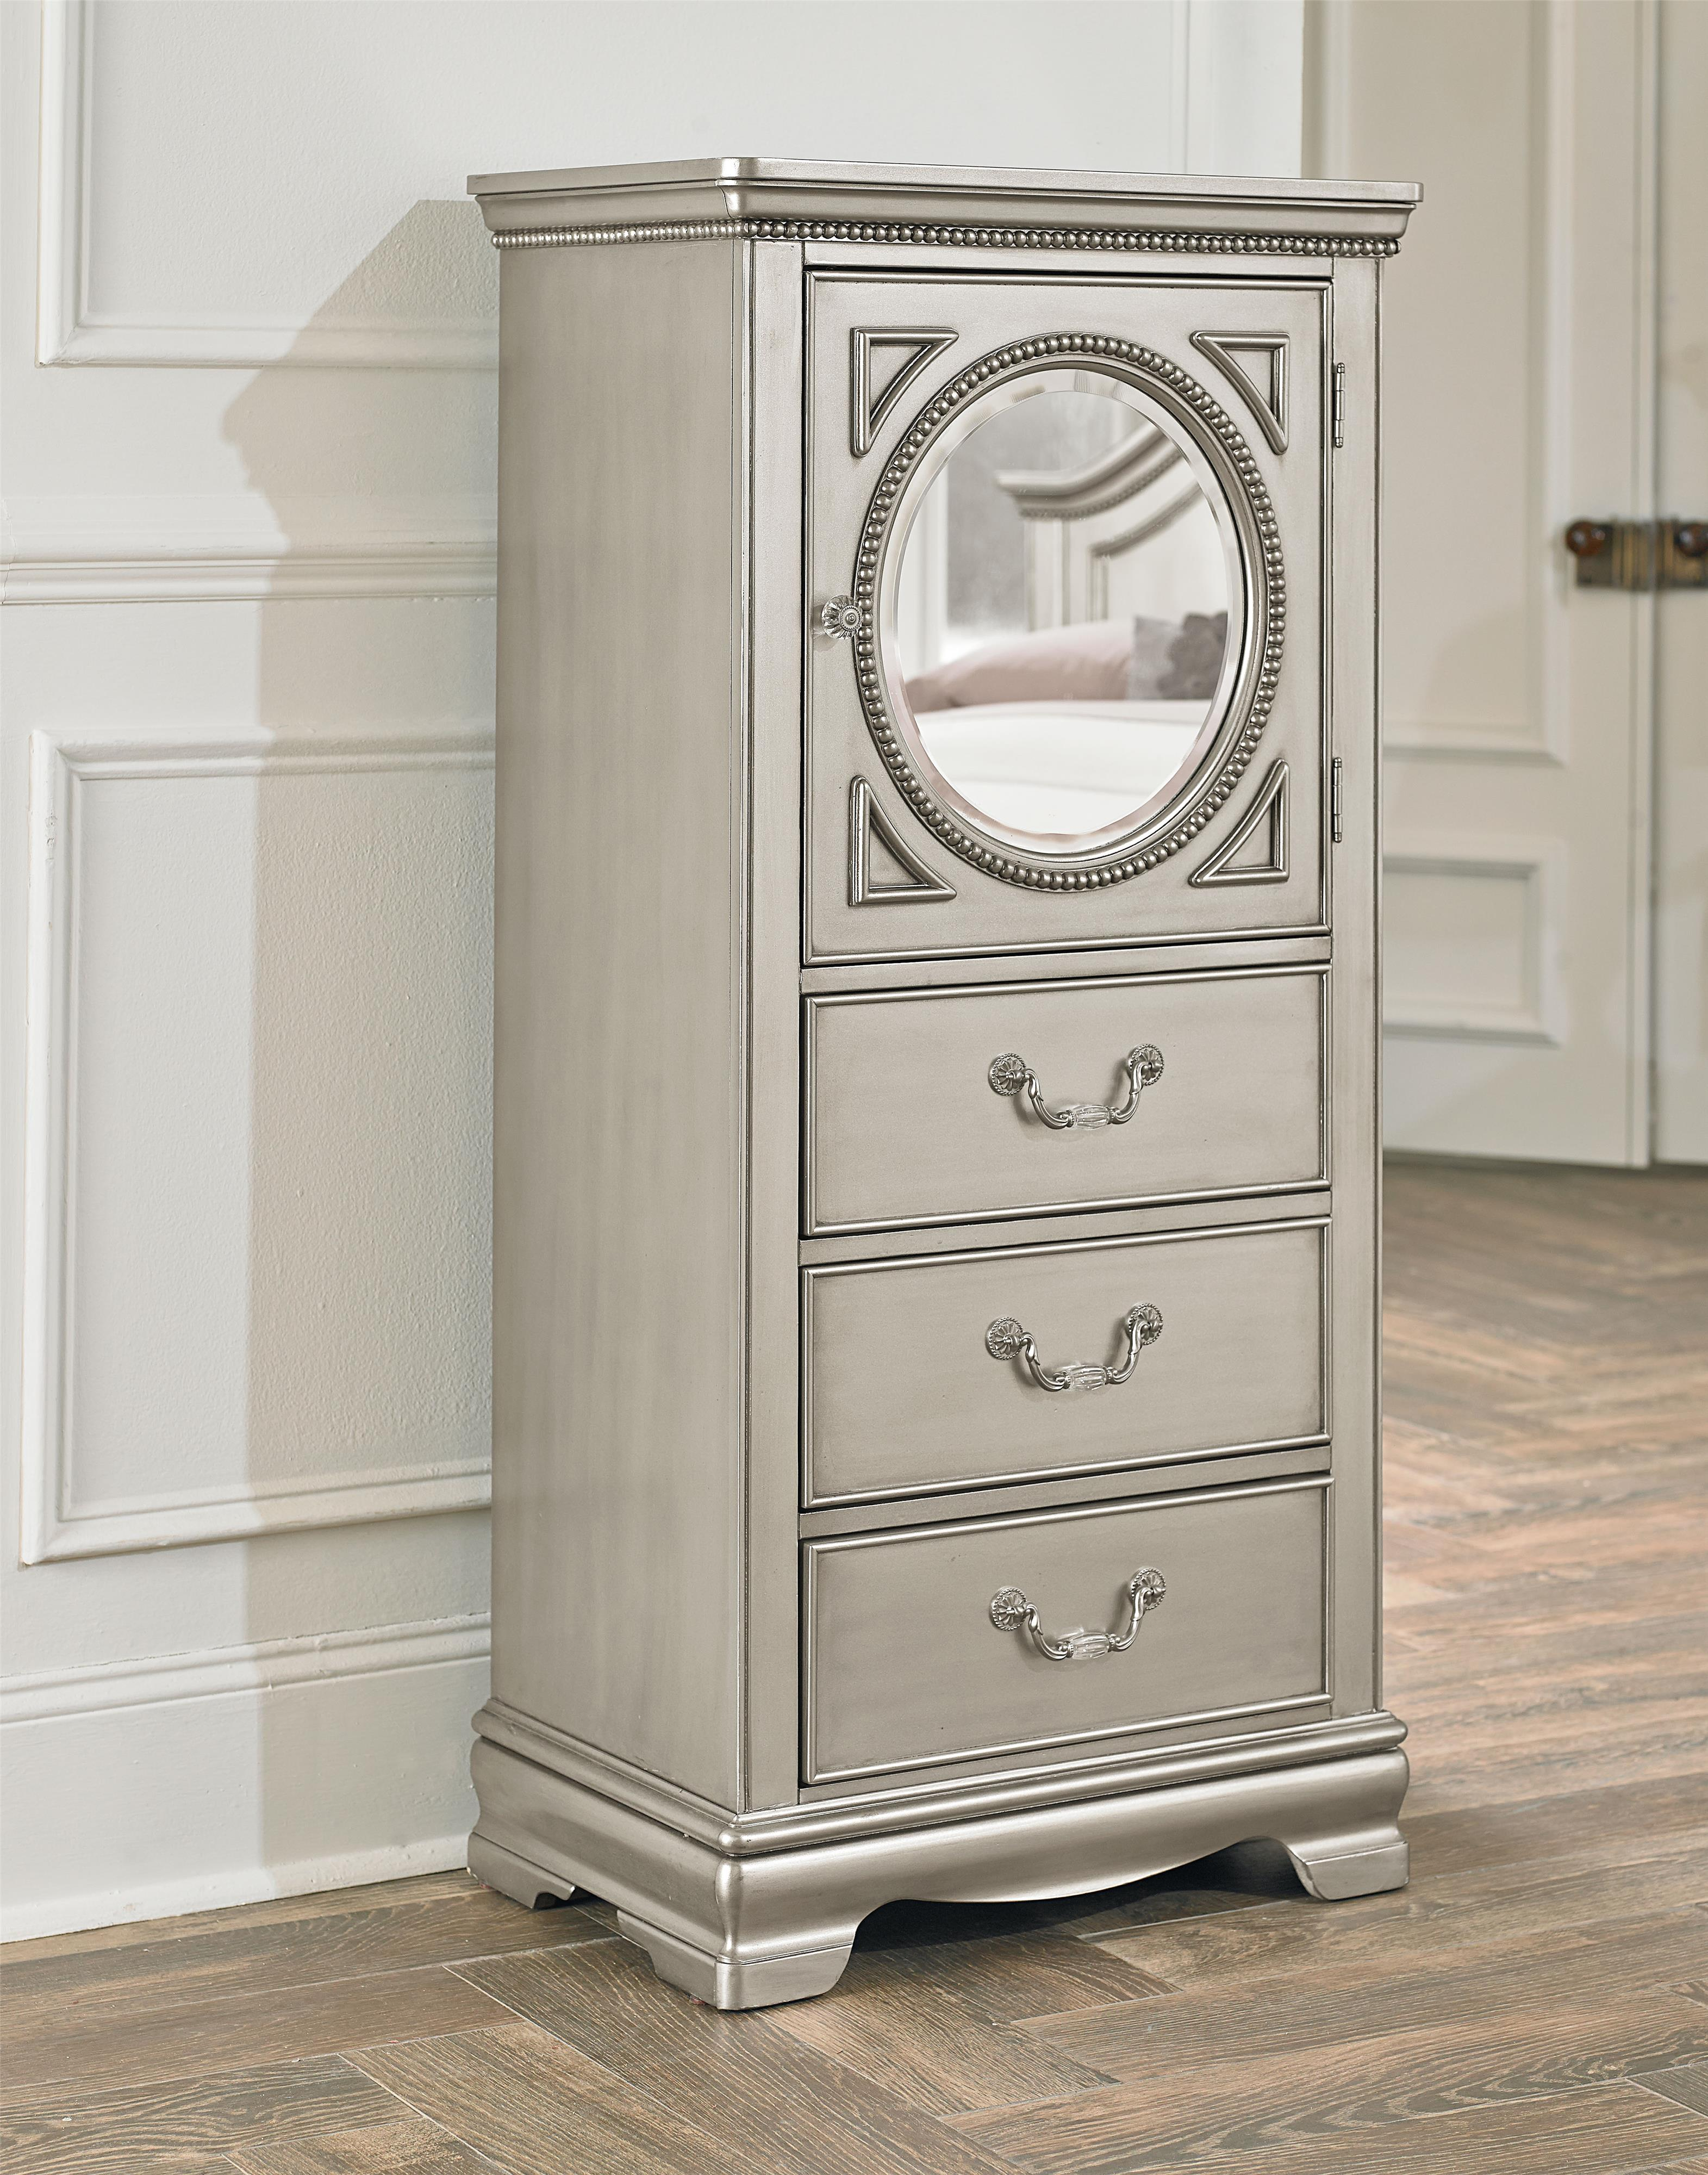 Standard furniture jessica silver looking glass lingerie for Bedroom furniture 37027